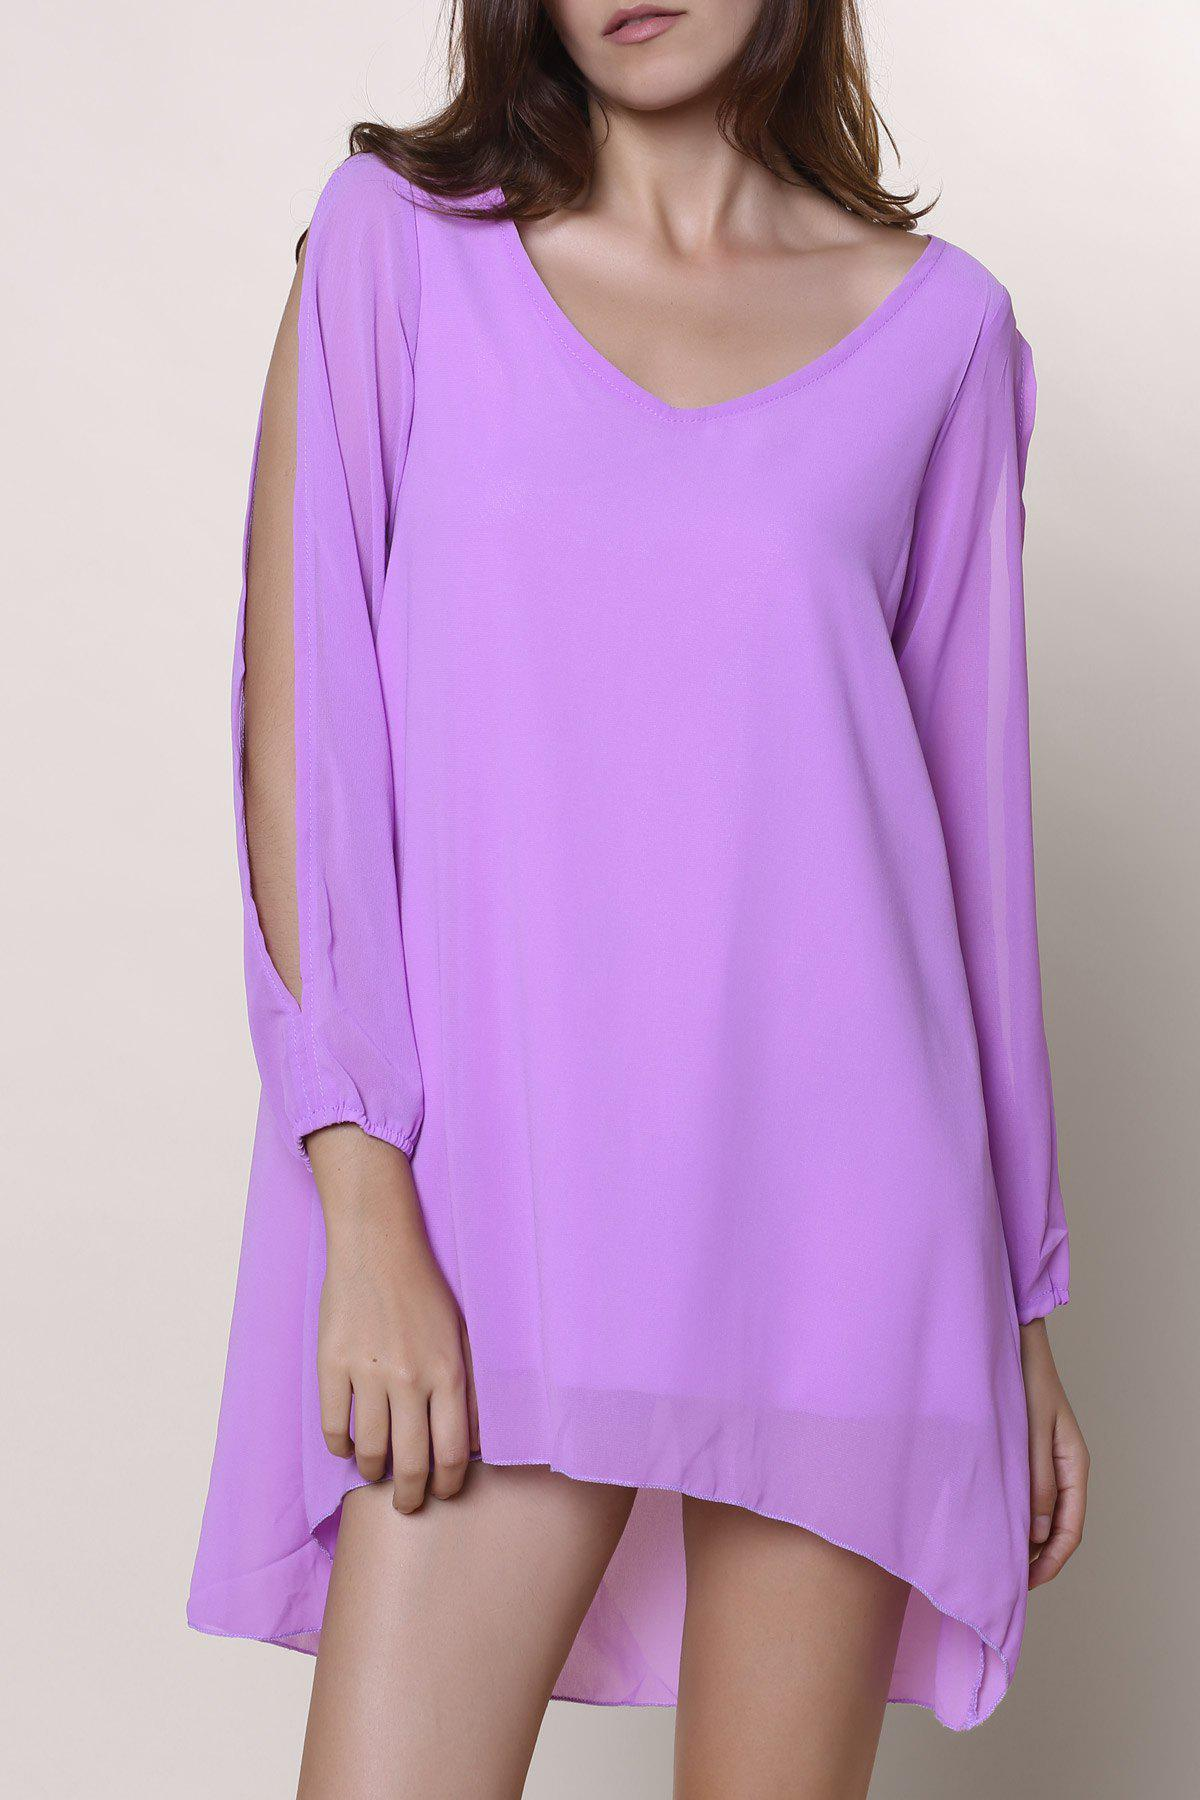 Unique Split Long Sleeve Chiffon Tunic Mini Dress